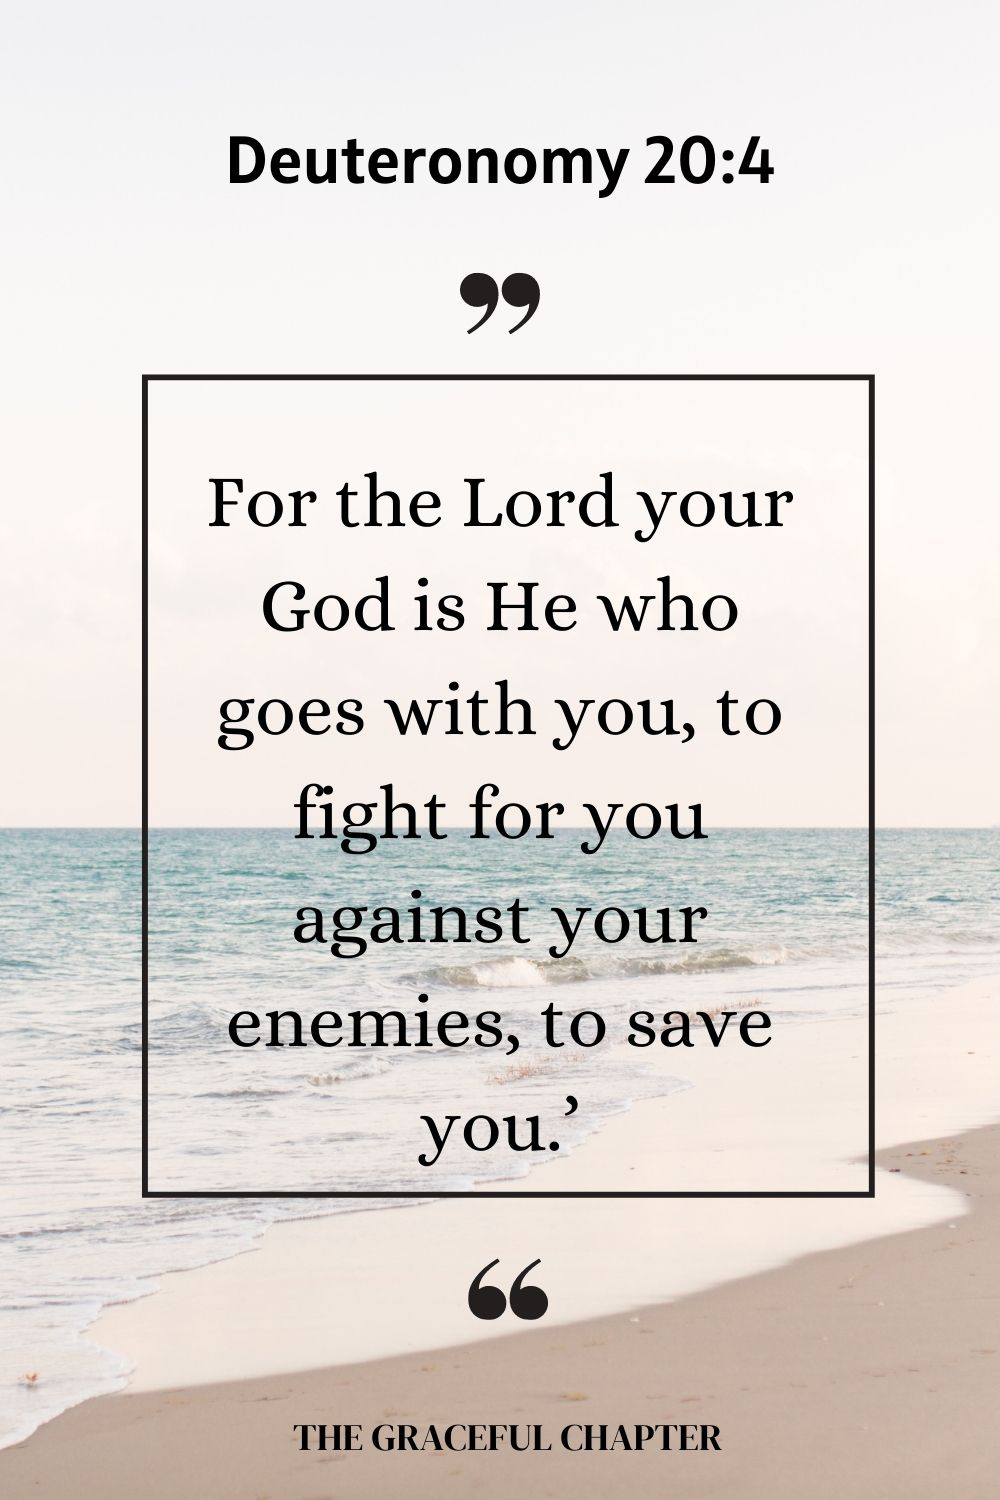 For the Lord your God is He who goes with you, to fight for you against your enemies, to save you.' Deuteronomy 20:4